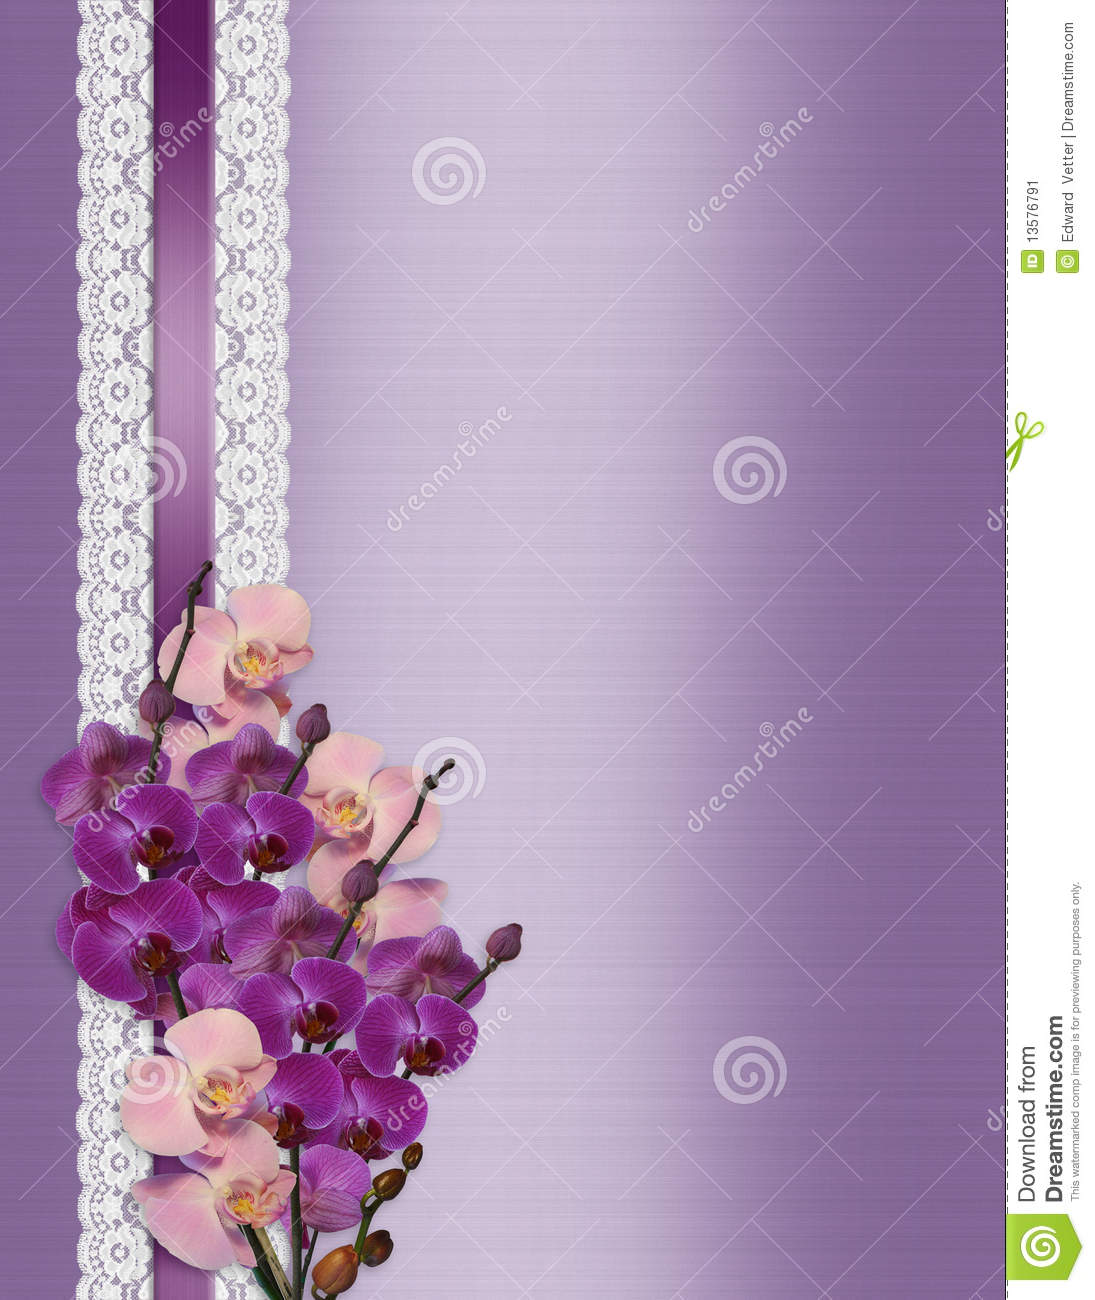 Wedding Invitation Orchids On Lavender Satin Stock